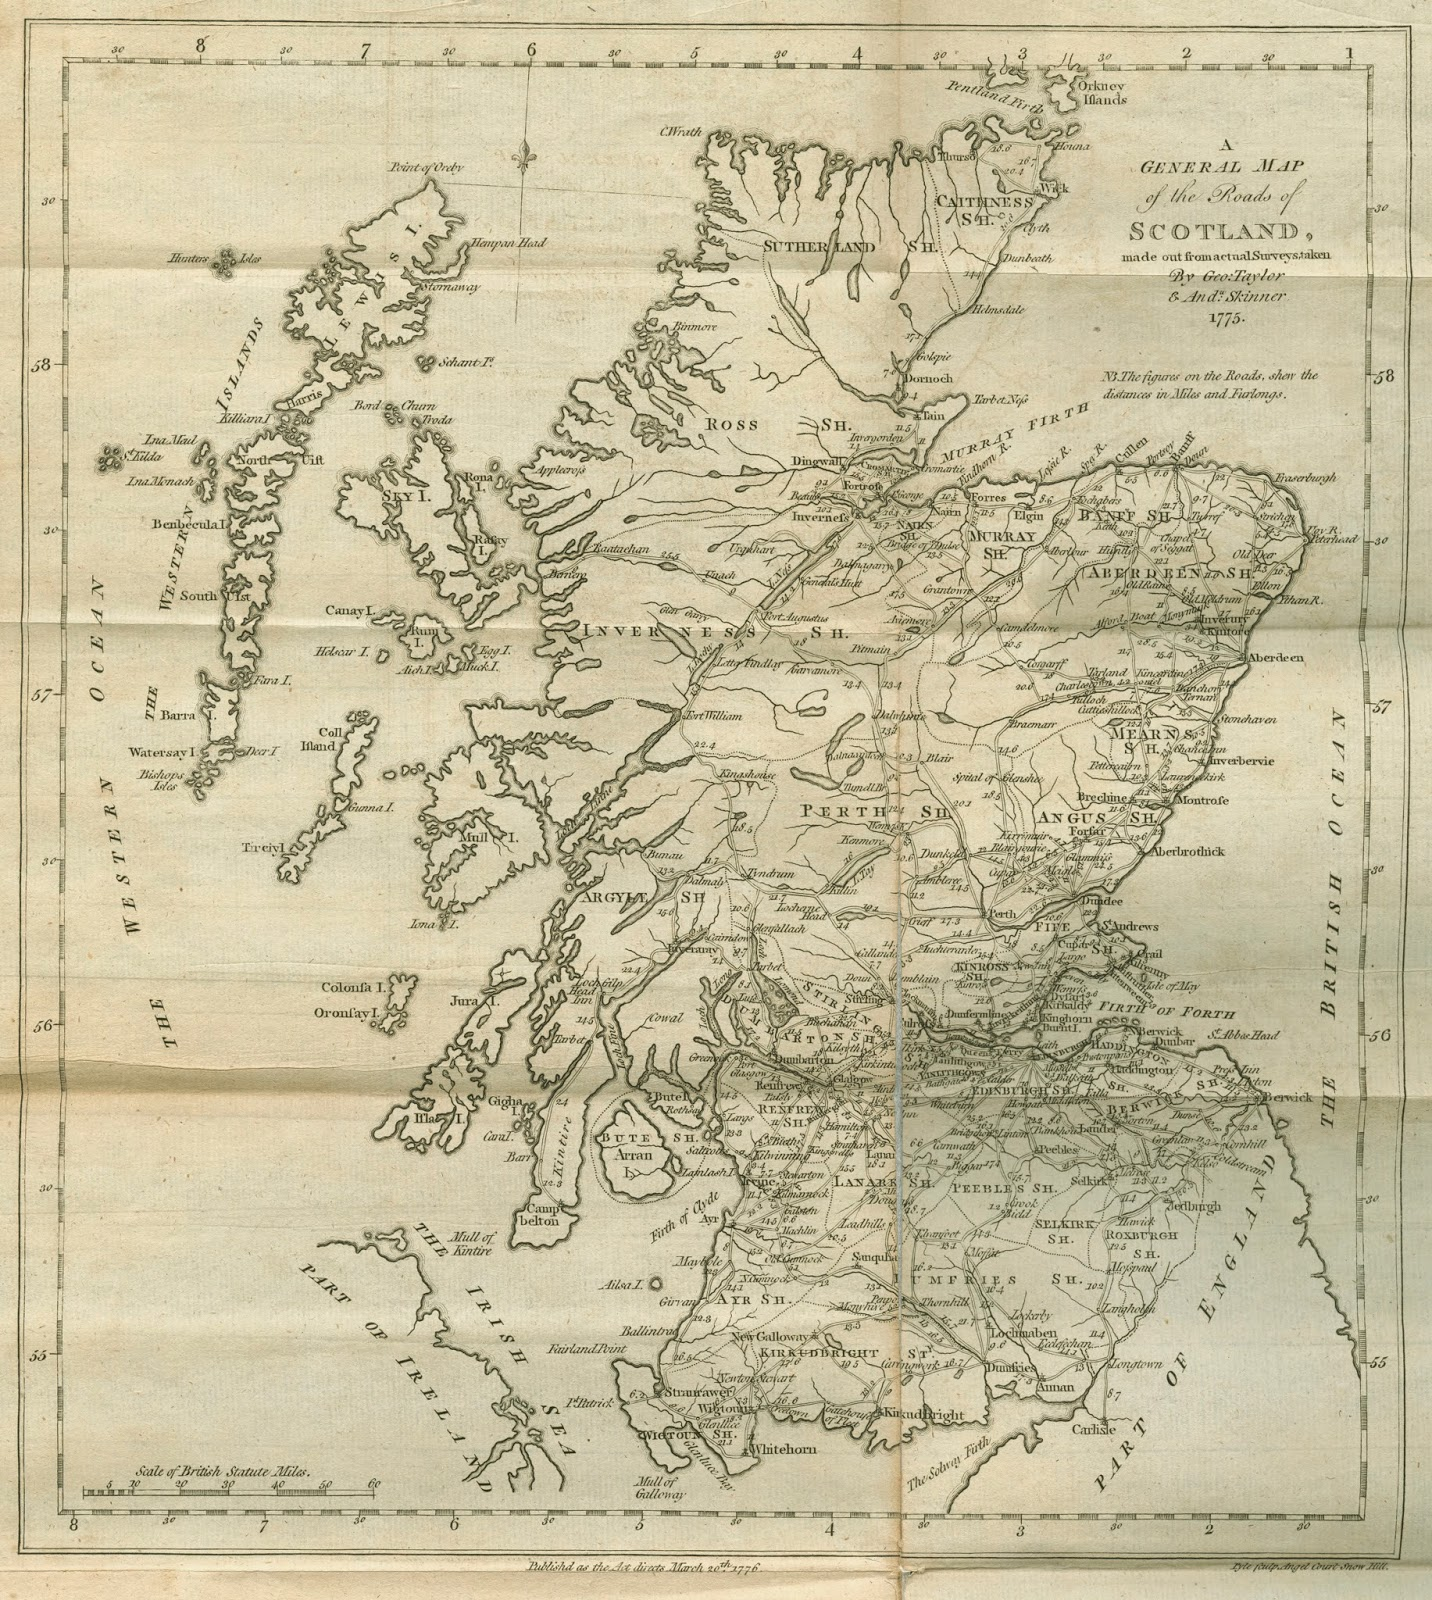 A general map of Scotland.